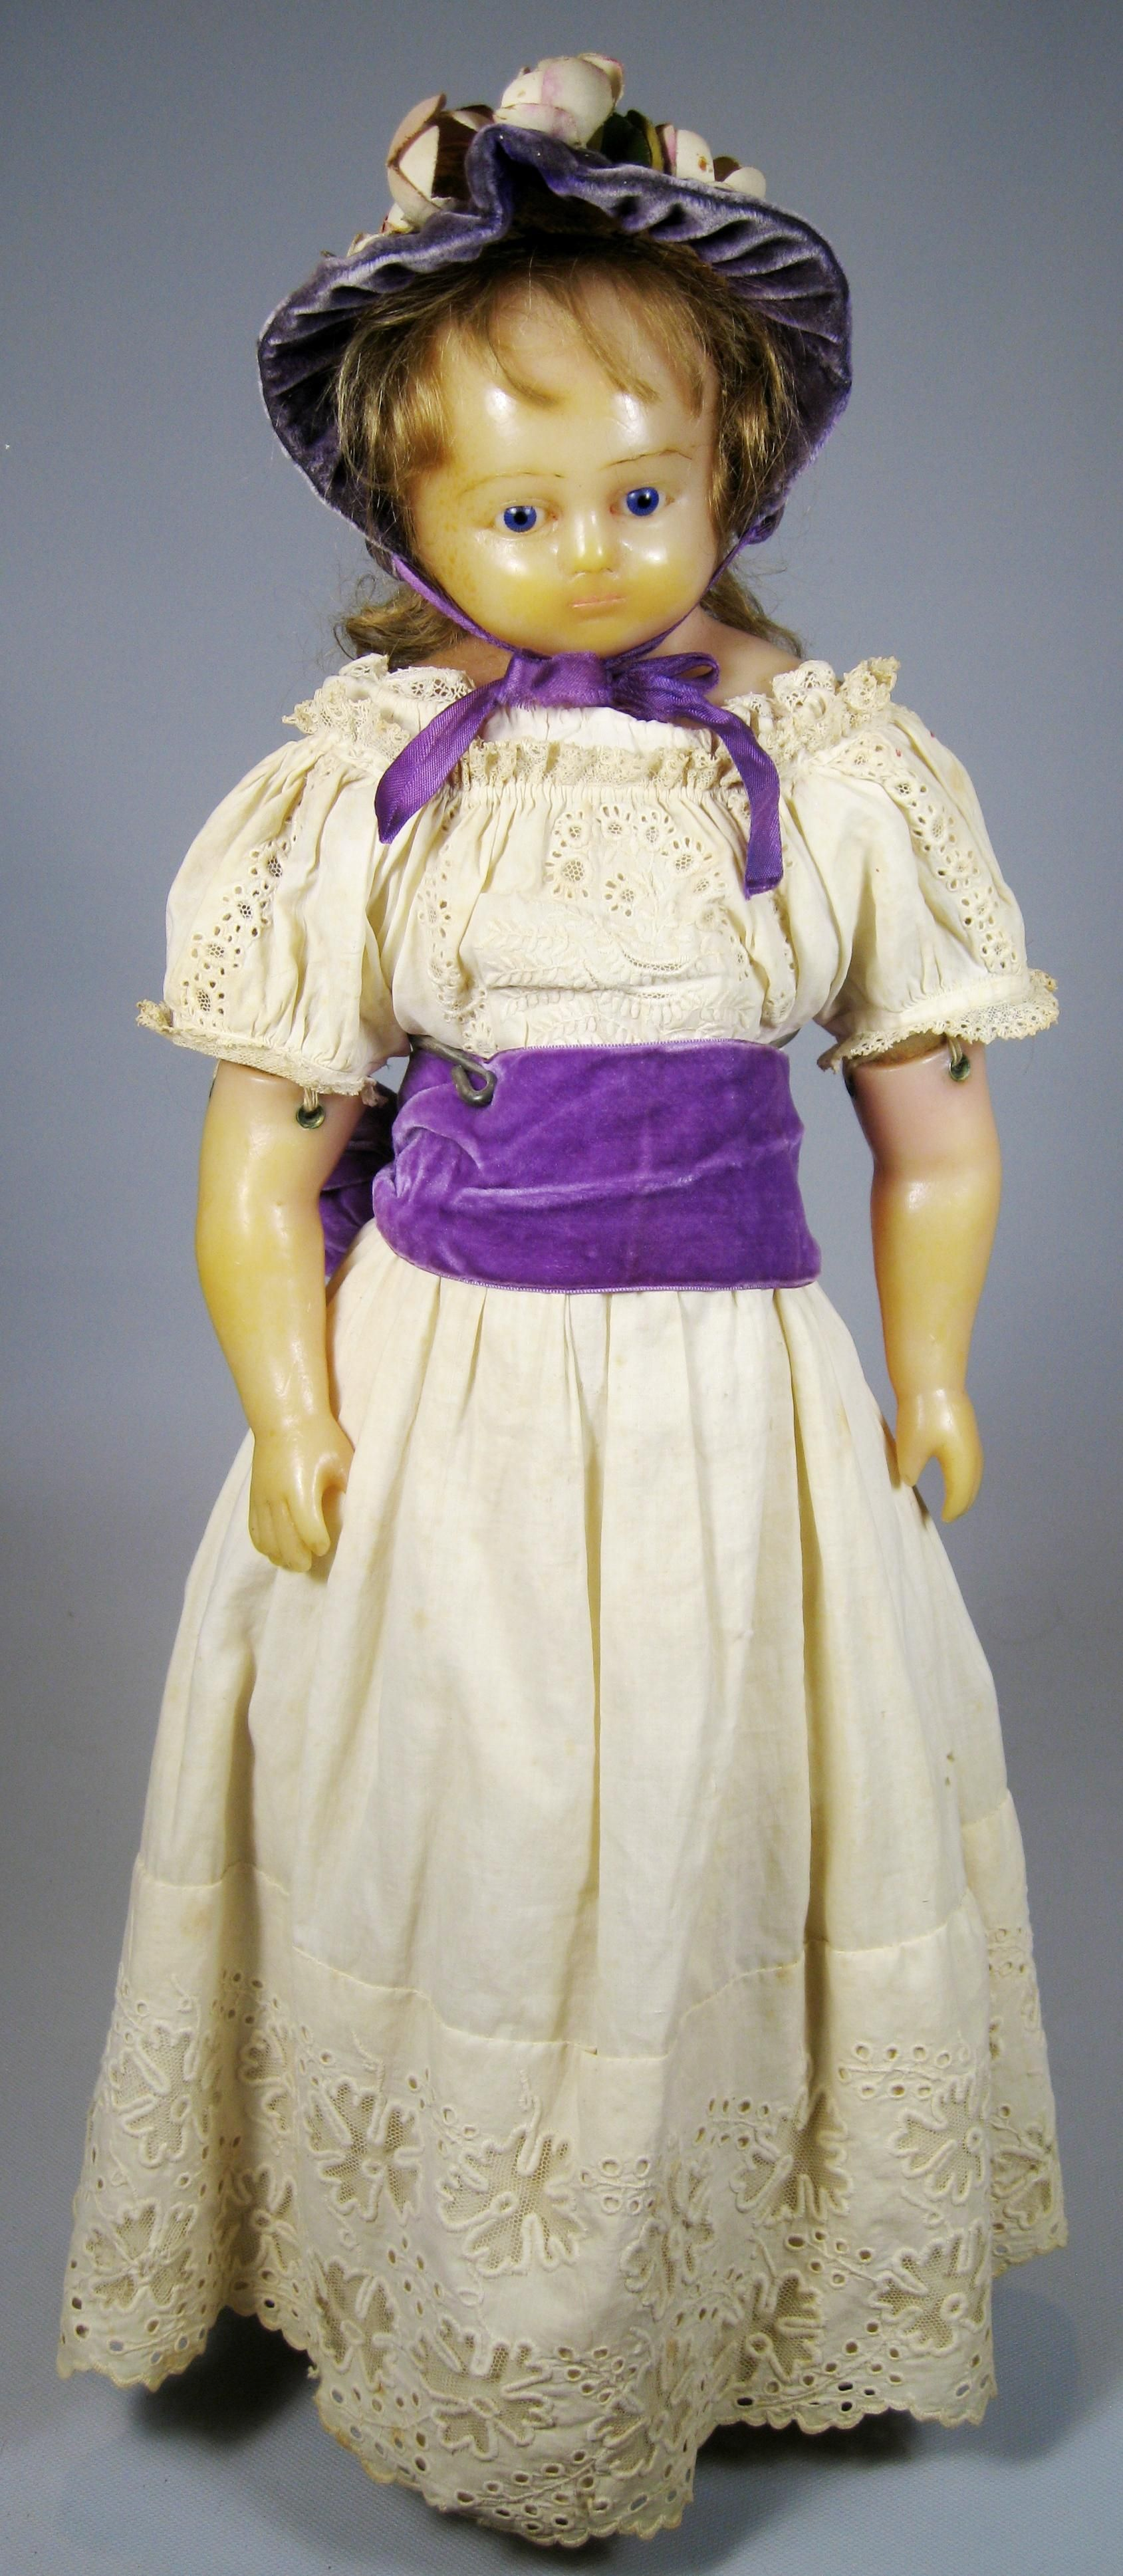 Antique English Poured Wax Doll #englishdresses1880